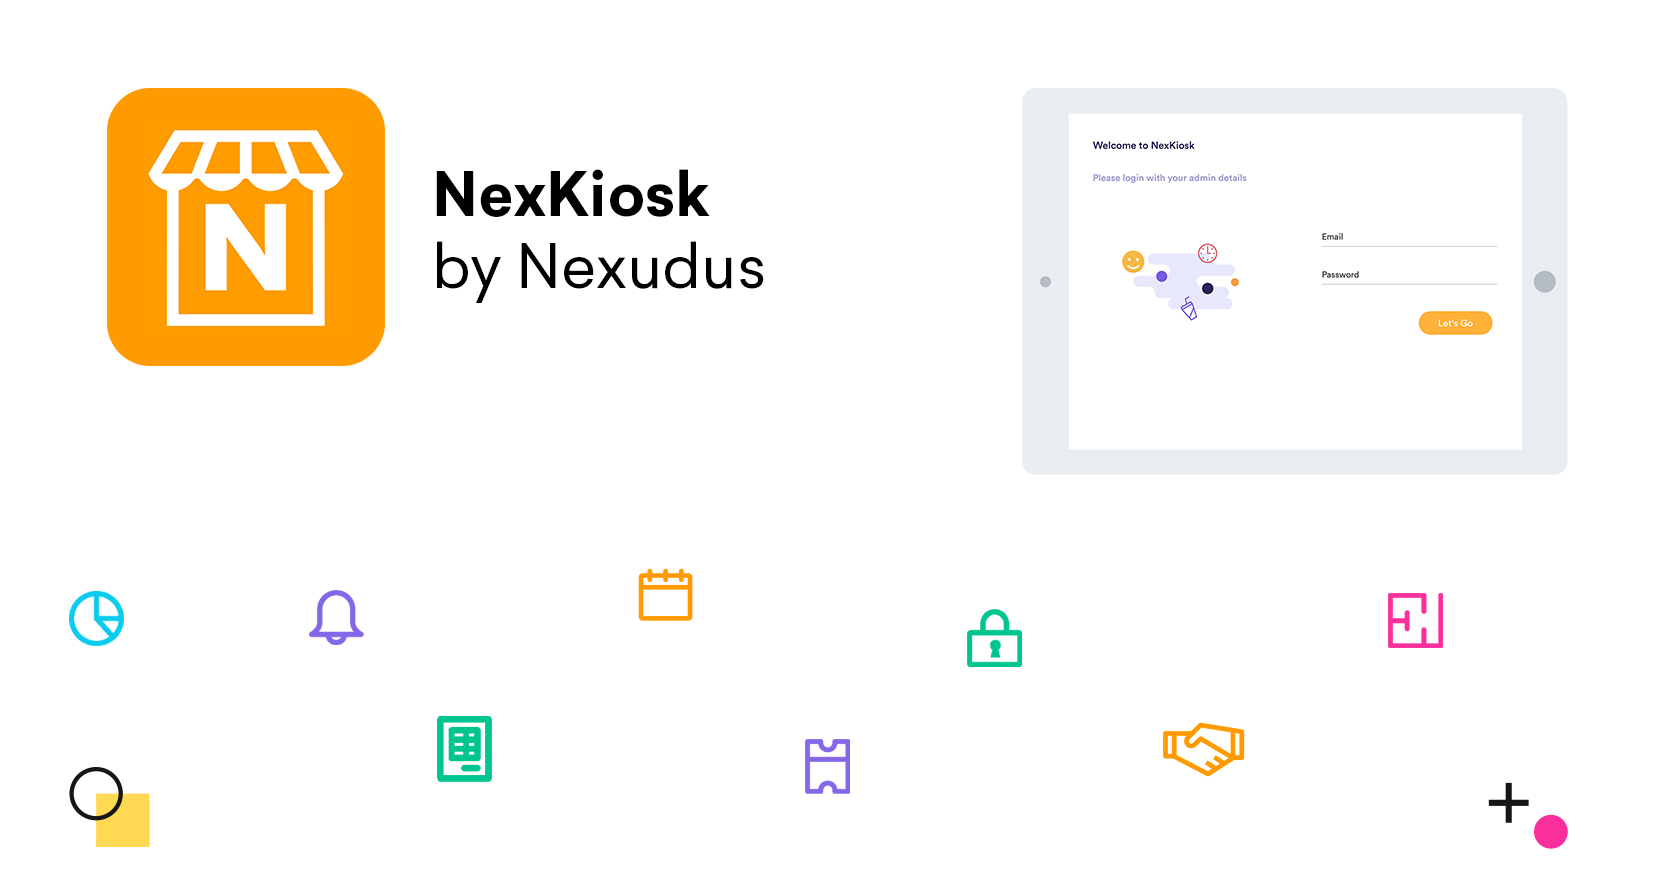 Simplify the process of purchasing items in your space with NexKiosk